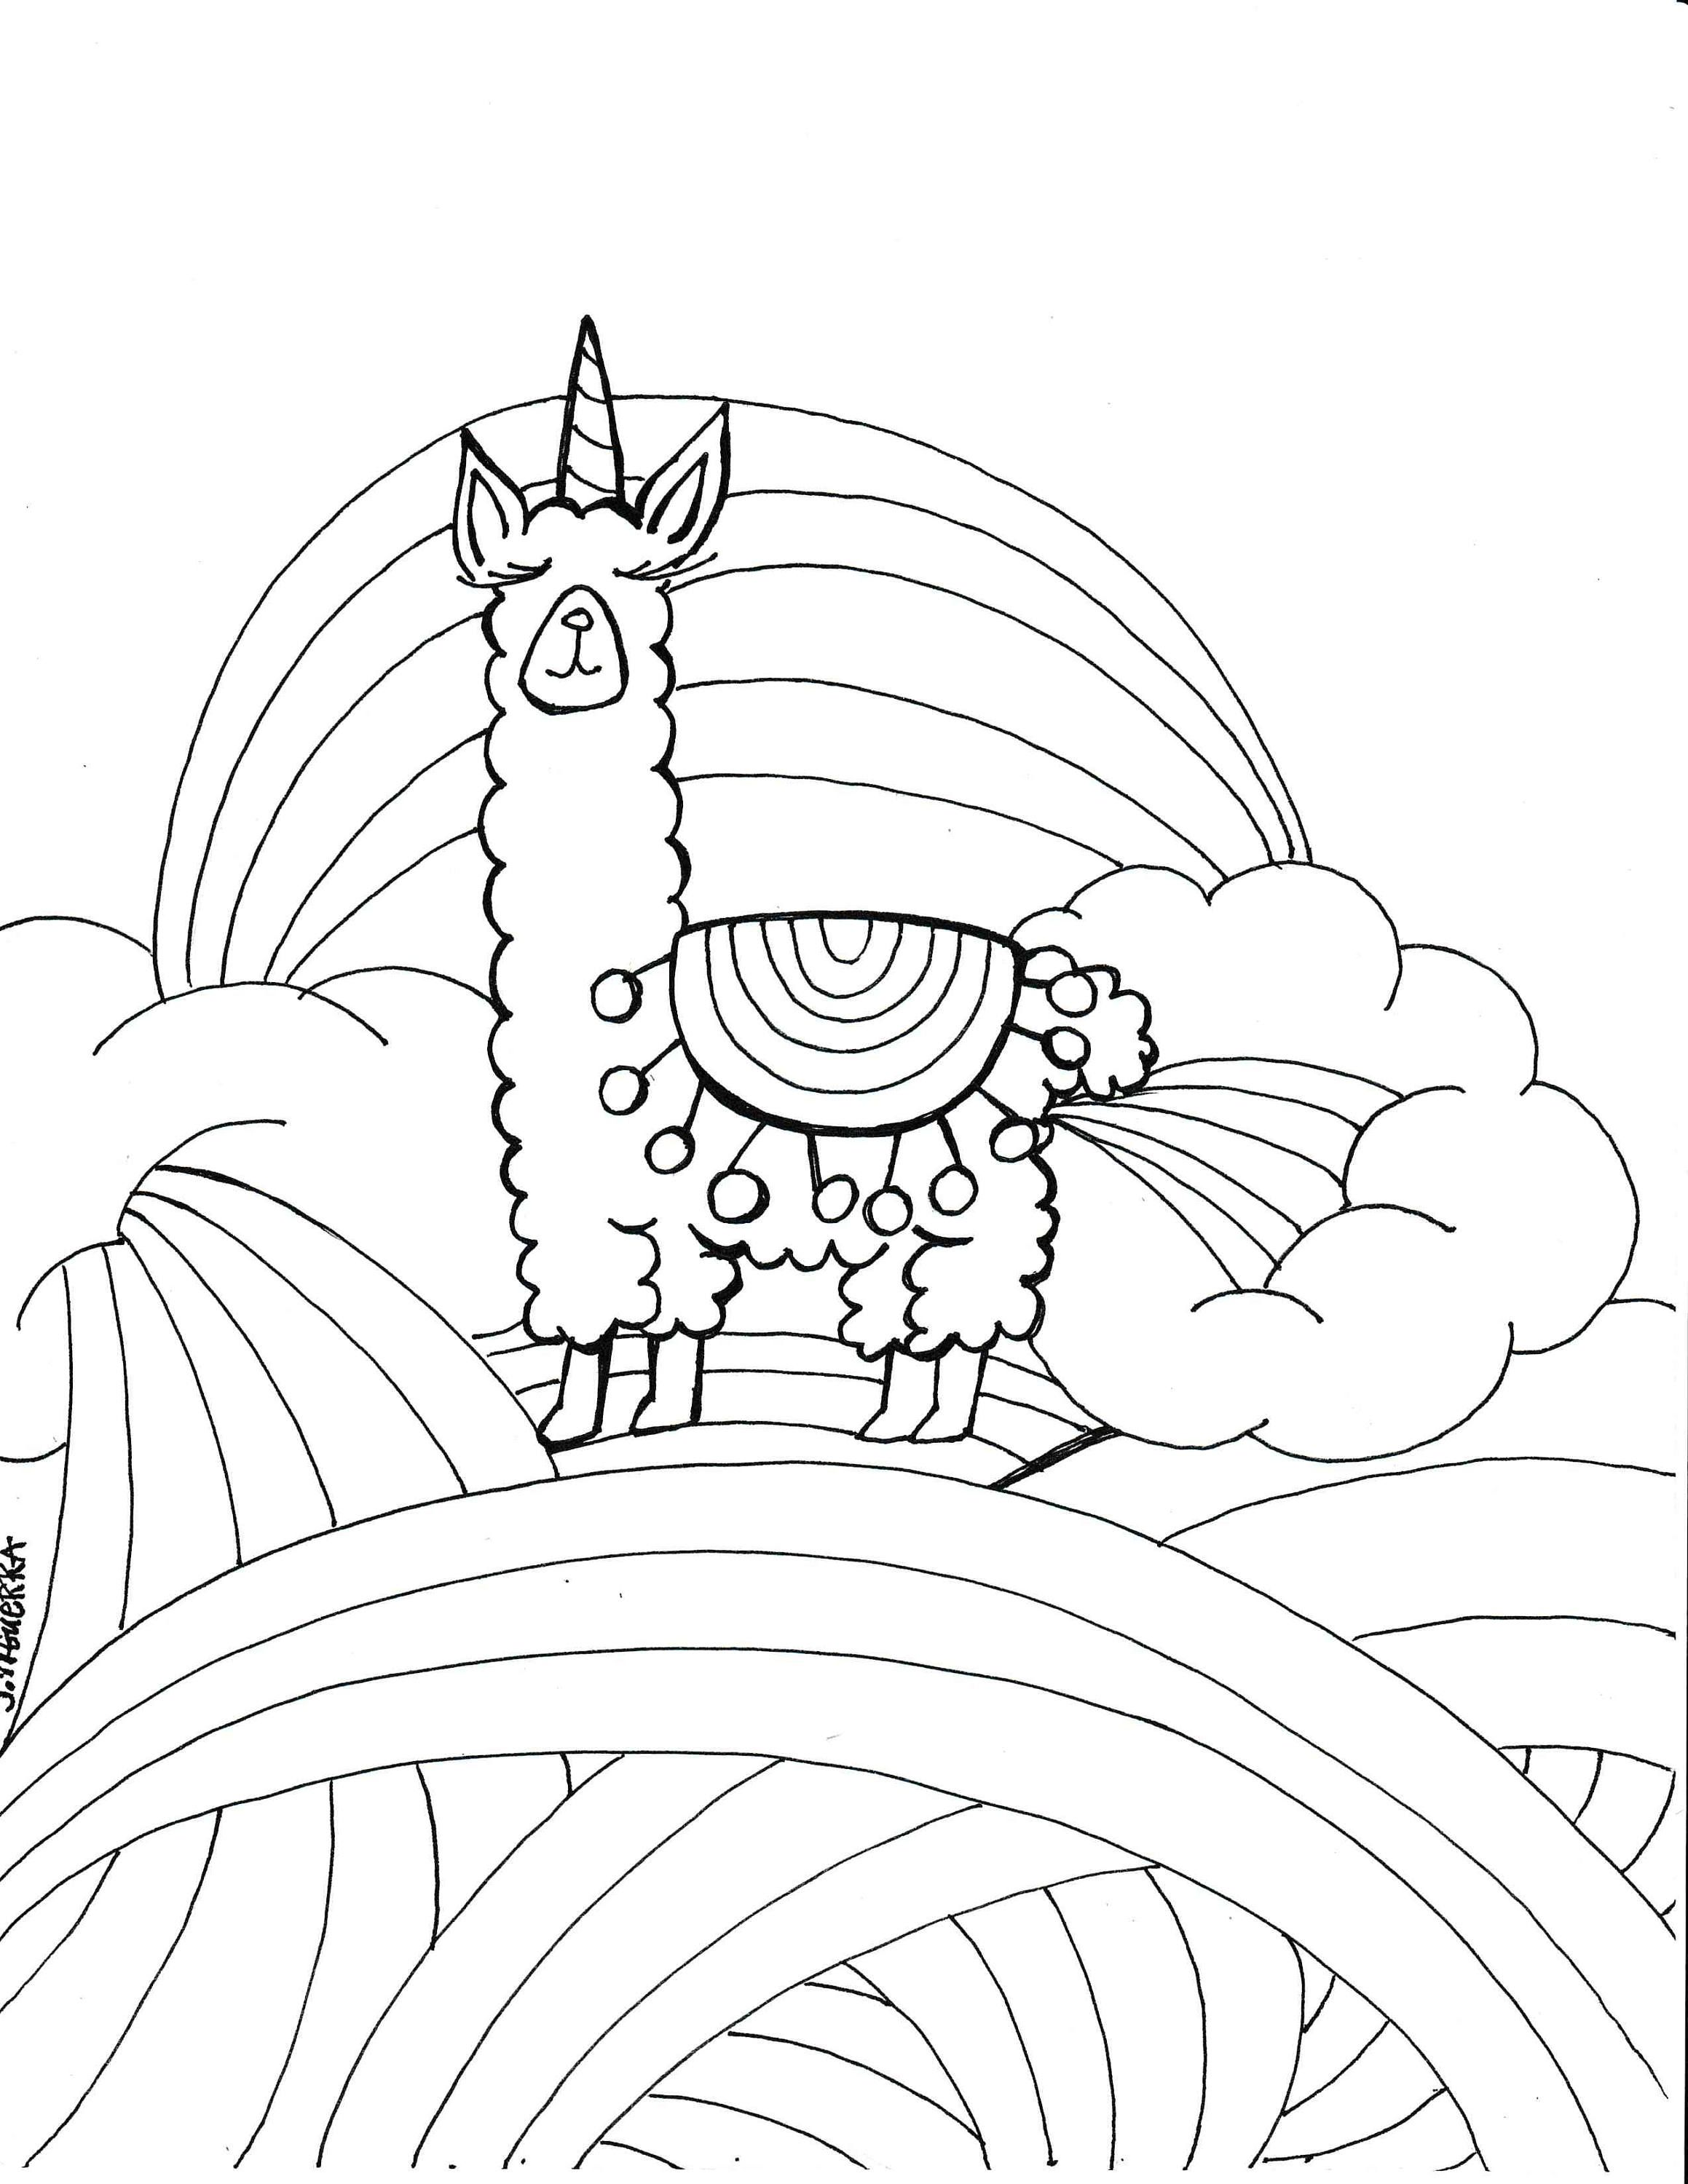 Llamacorn coloring page PDF printable art by Journalingart